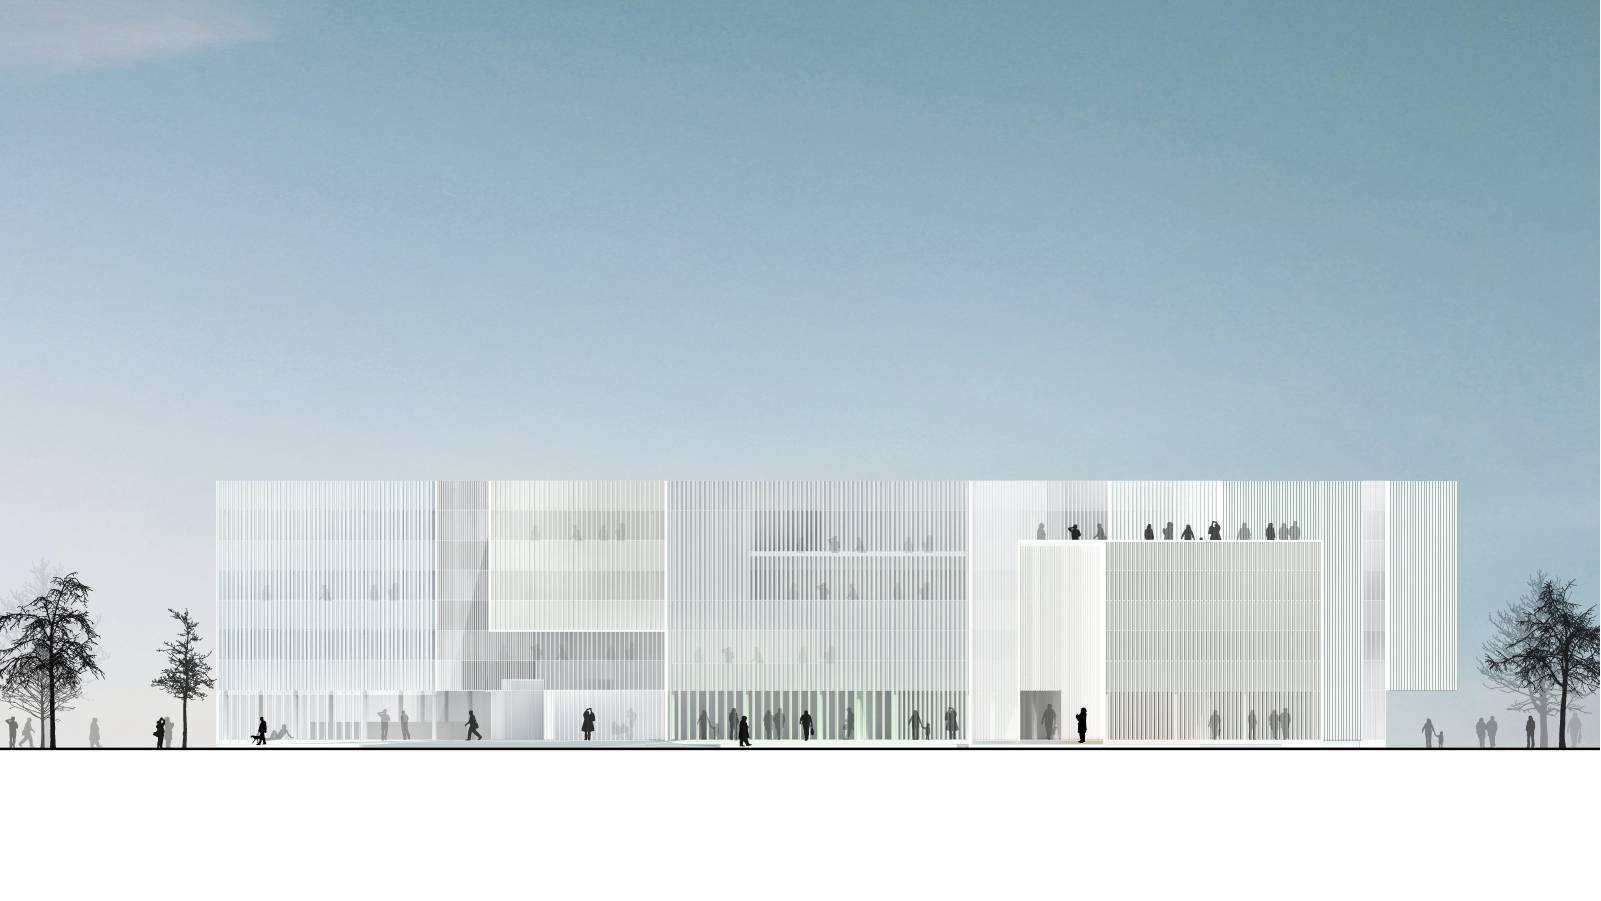 HARBOUR BASIN ELEVATION - Sandnes Town Hall - SPOL Architects